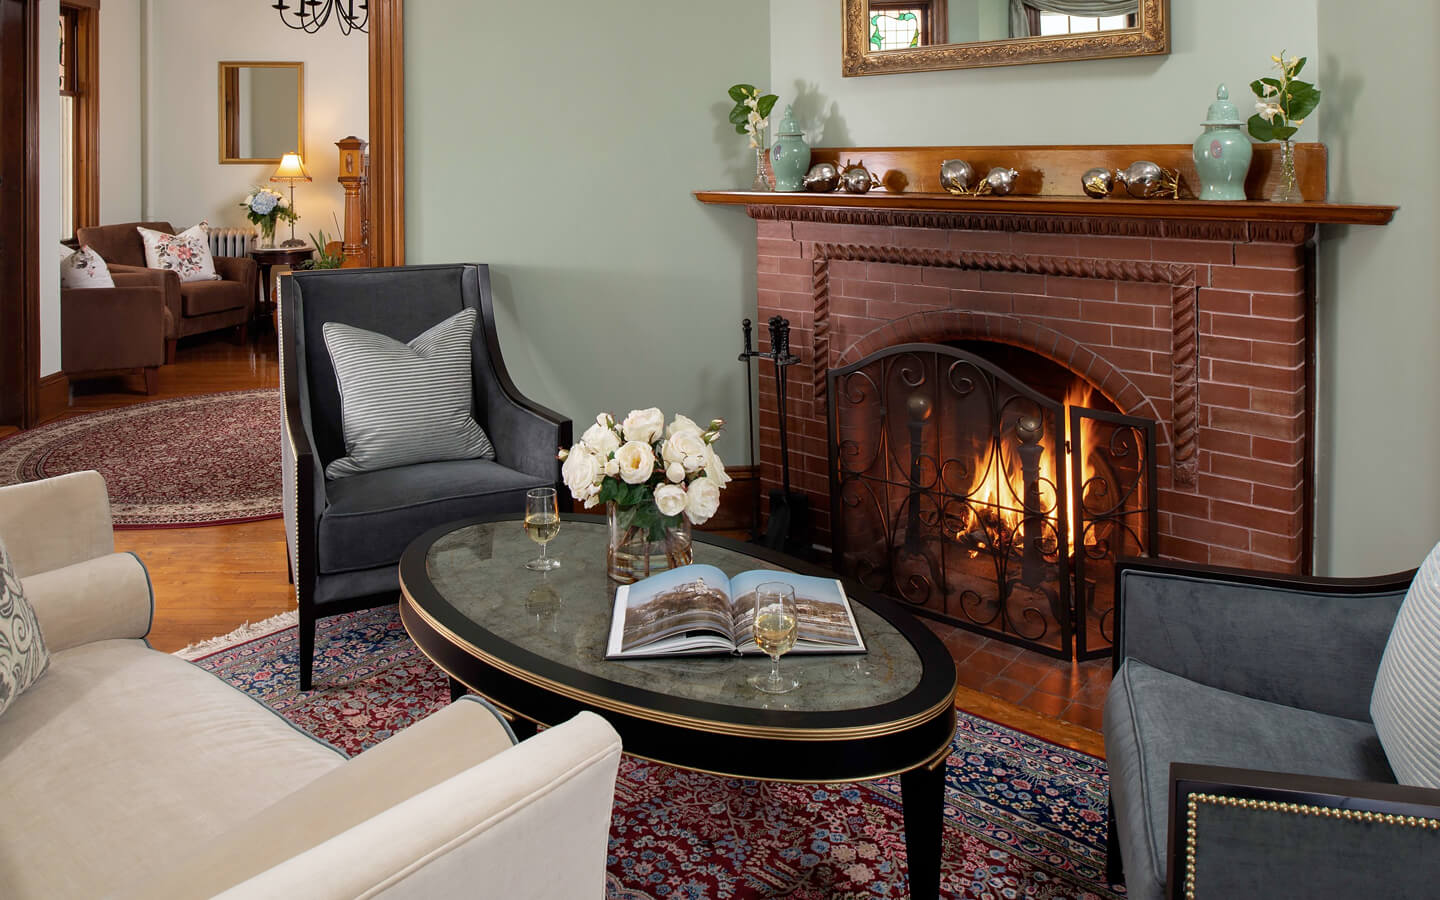 Clean and modern parlor with fireplace